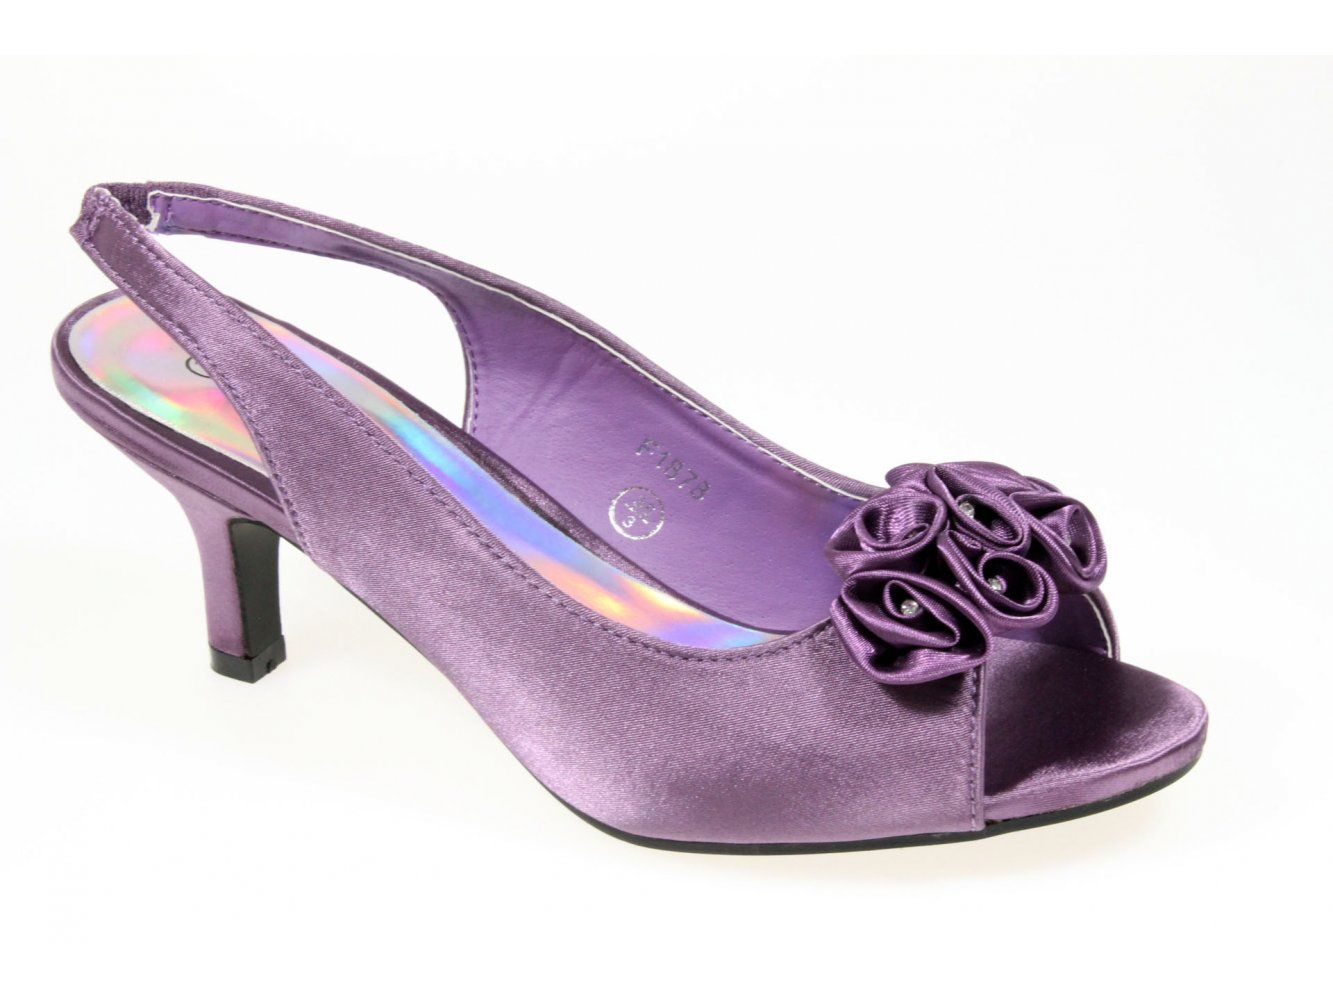 Shuperb ALEXIA Womens Low Heel Satin Bridesmaid Shoes Purple ...